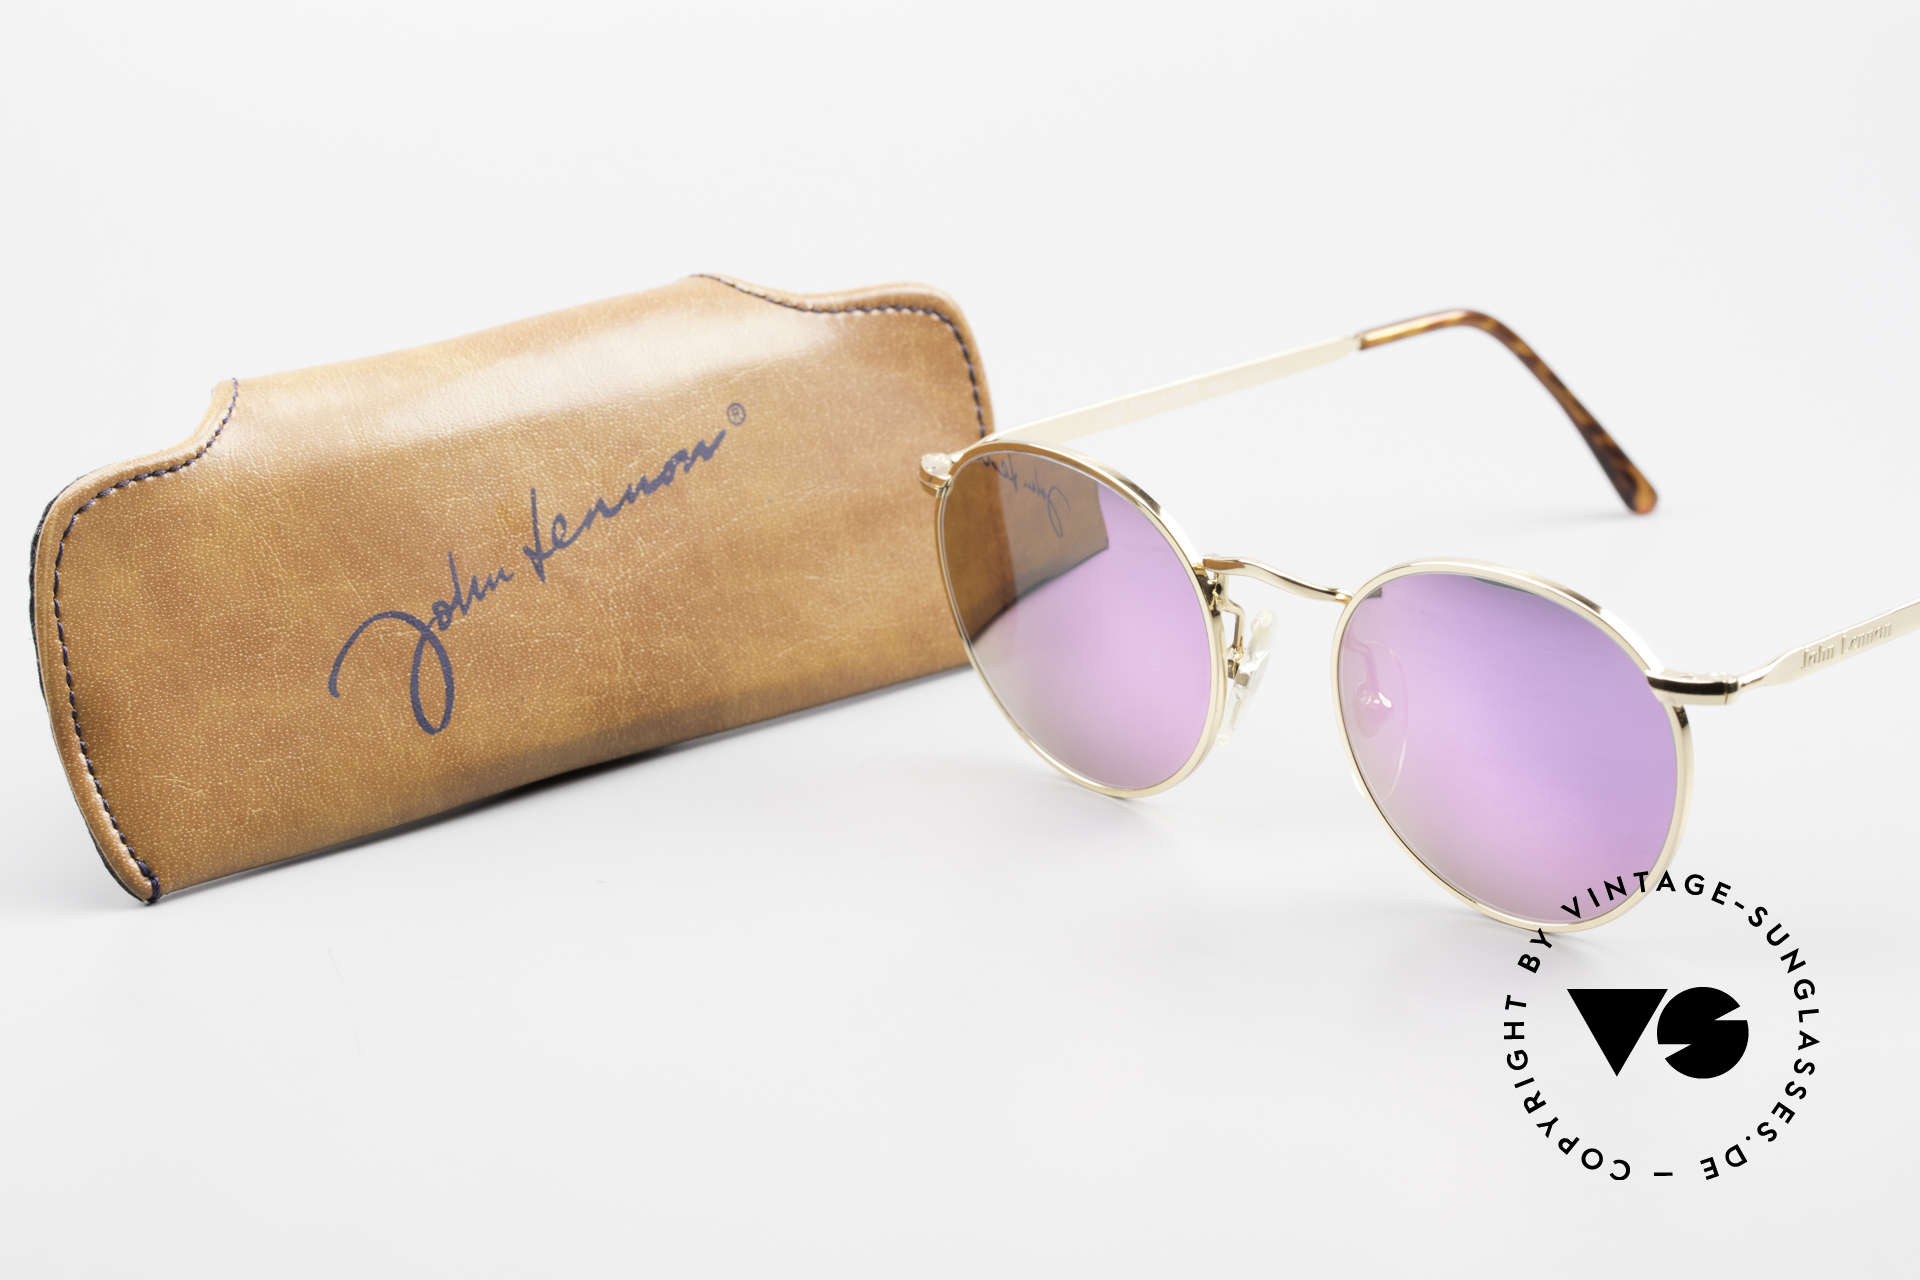 John Lennon - The Dreamer With Pink Mirrored Sun Lenses, Size: extra small, Made for Men and Women